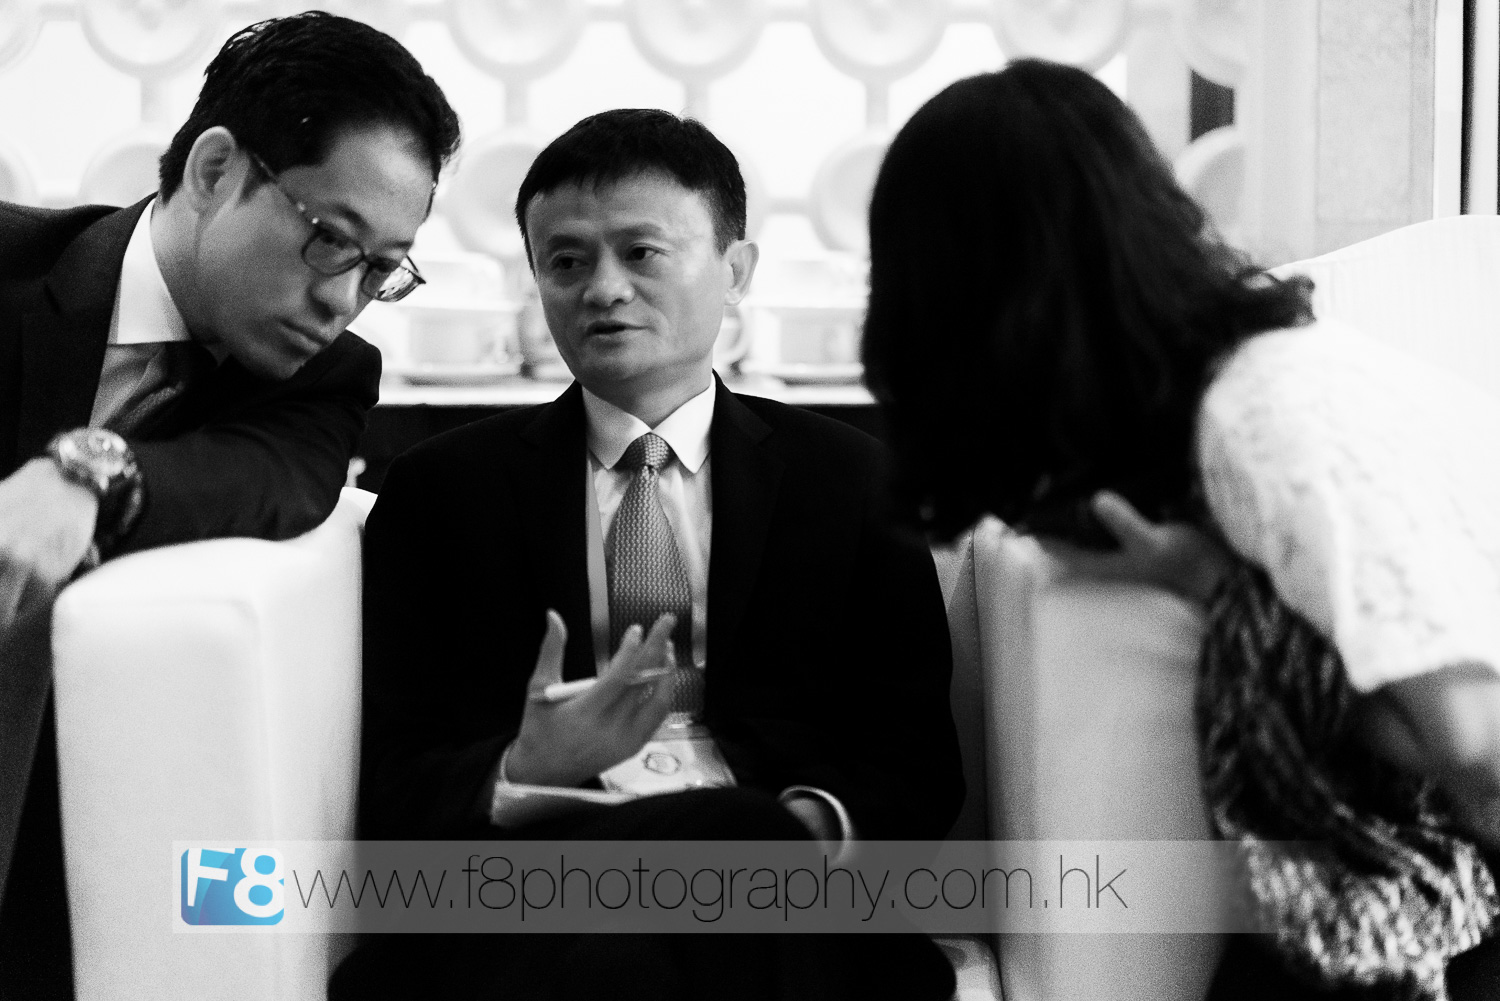 jack ma, founder of alibaba.com and the richest man in china preparing to take the stage with the president of the united states.